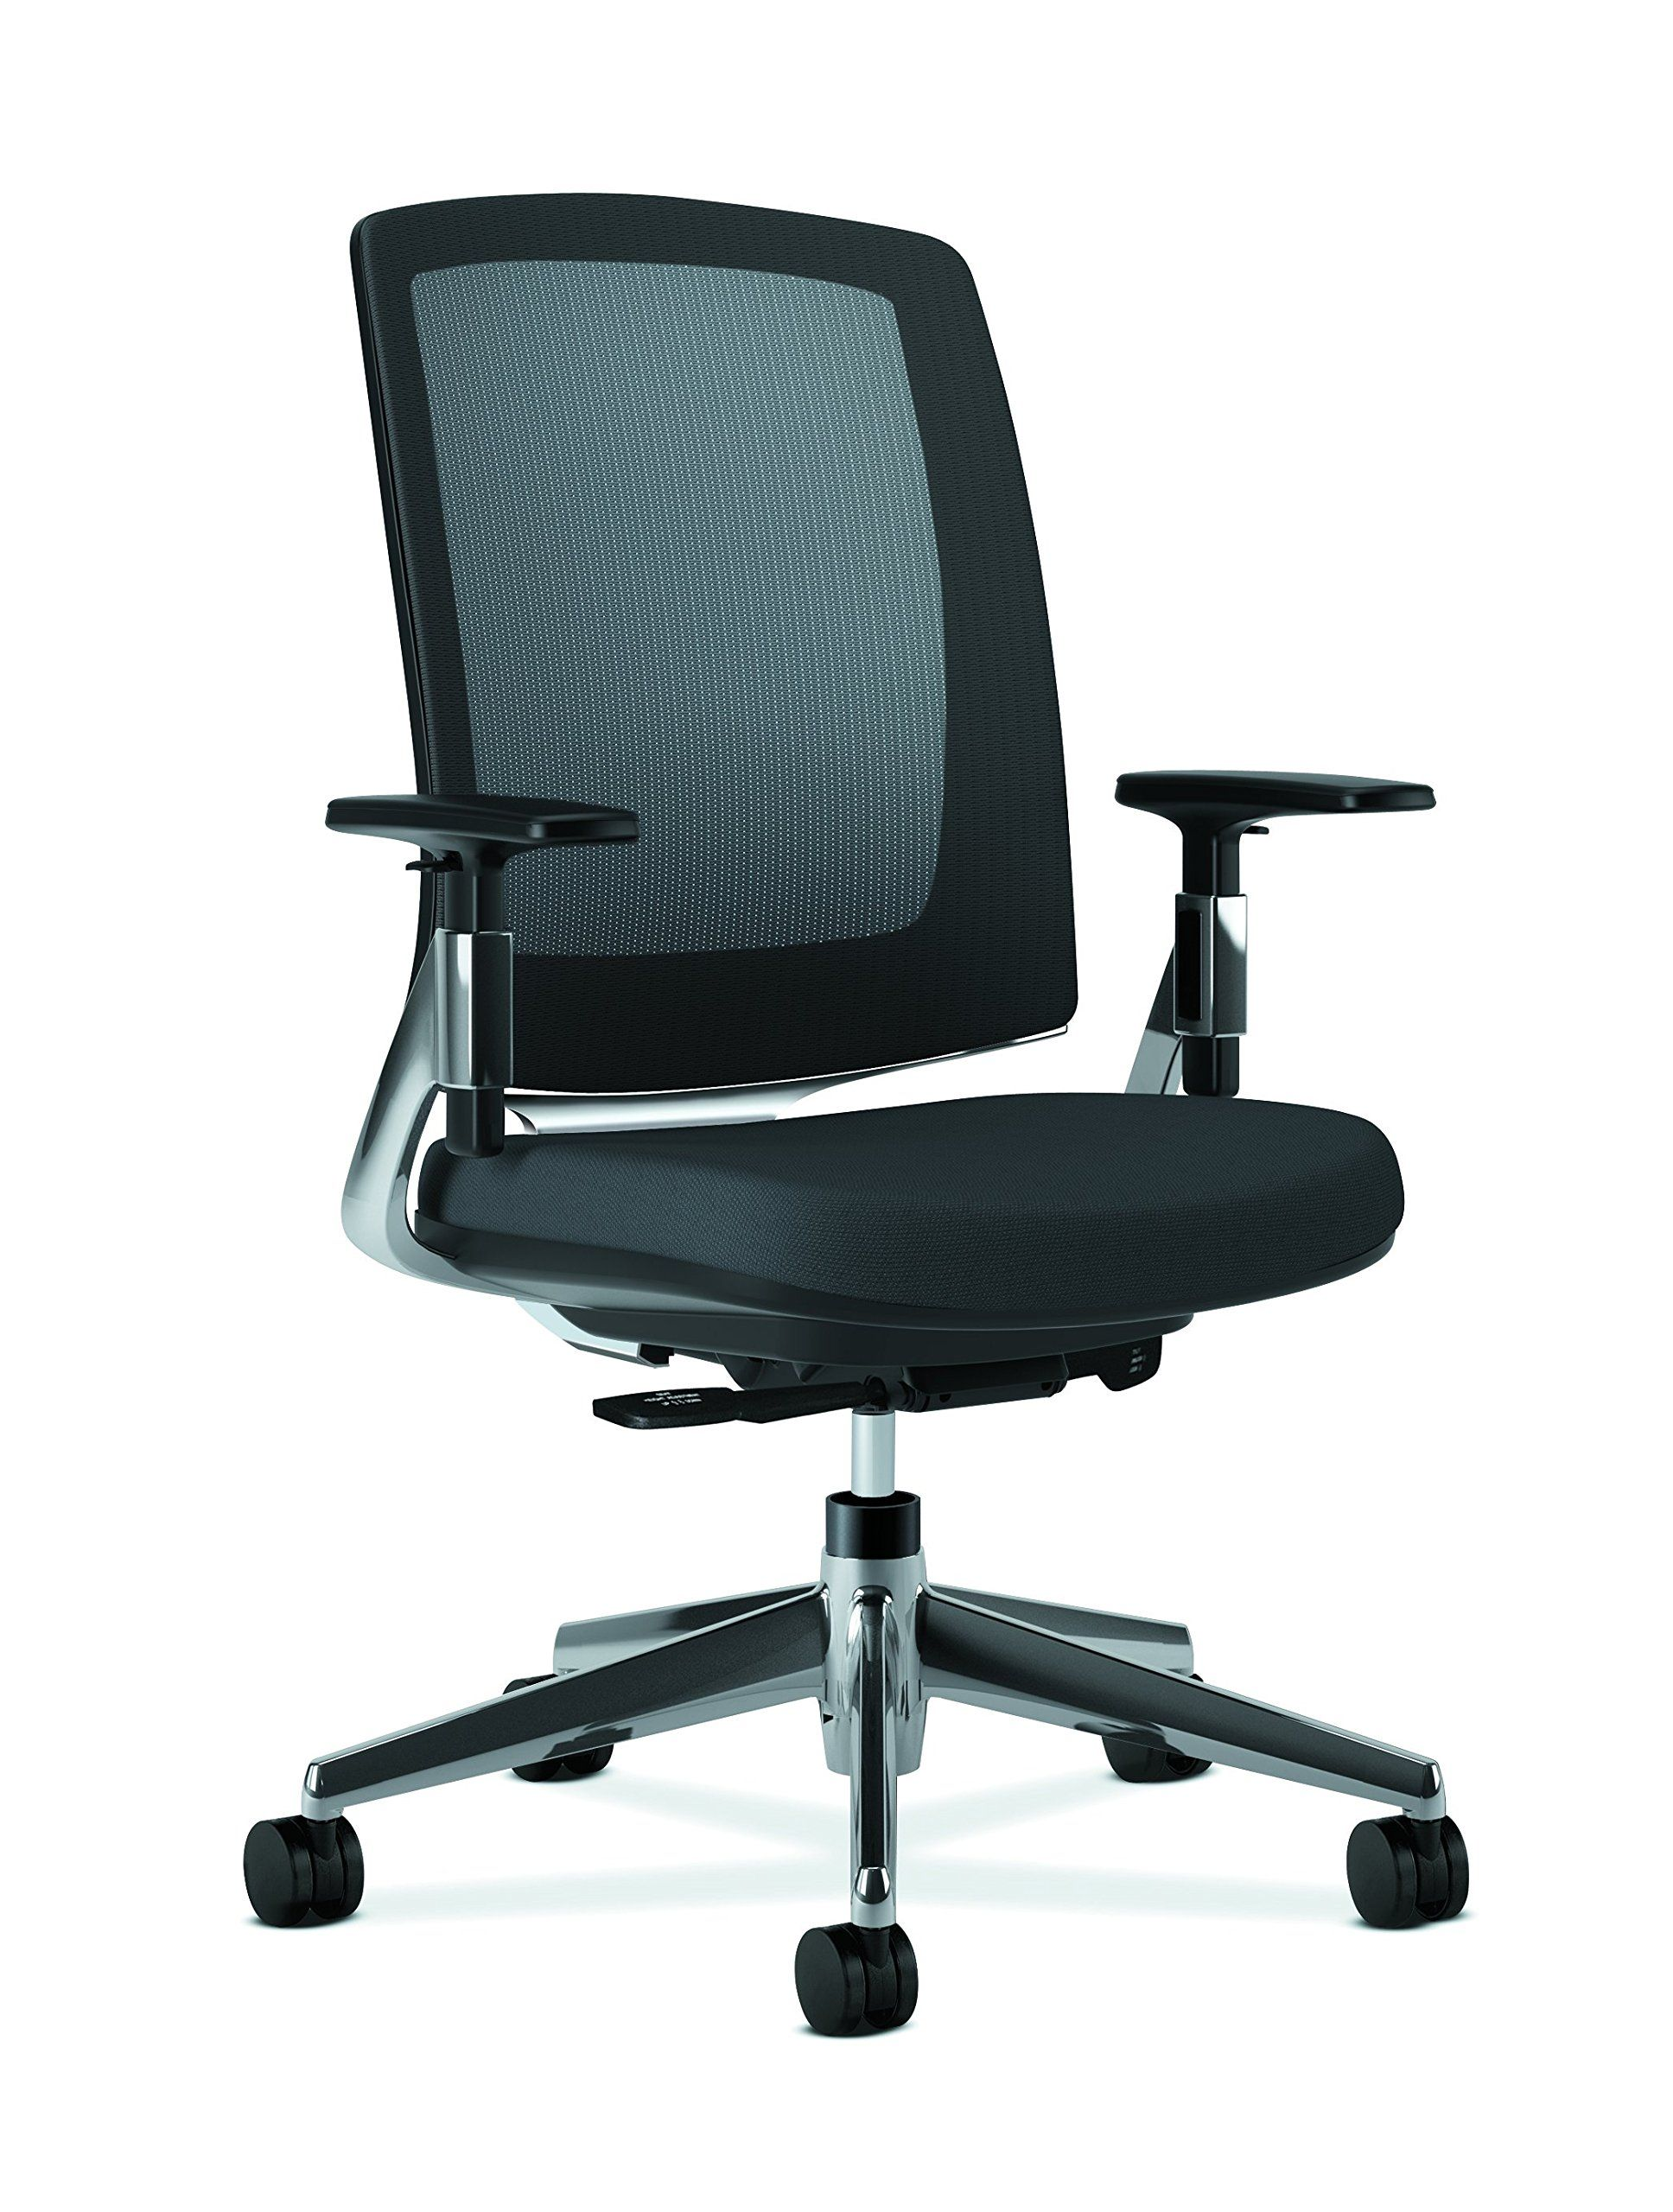 HON Lota Mid Back Work Chair   Mesh Back Computer Chair For Office Desk,